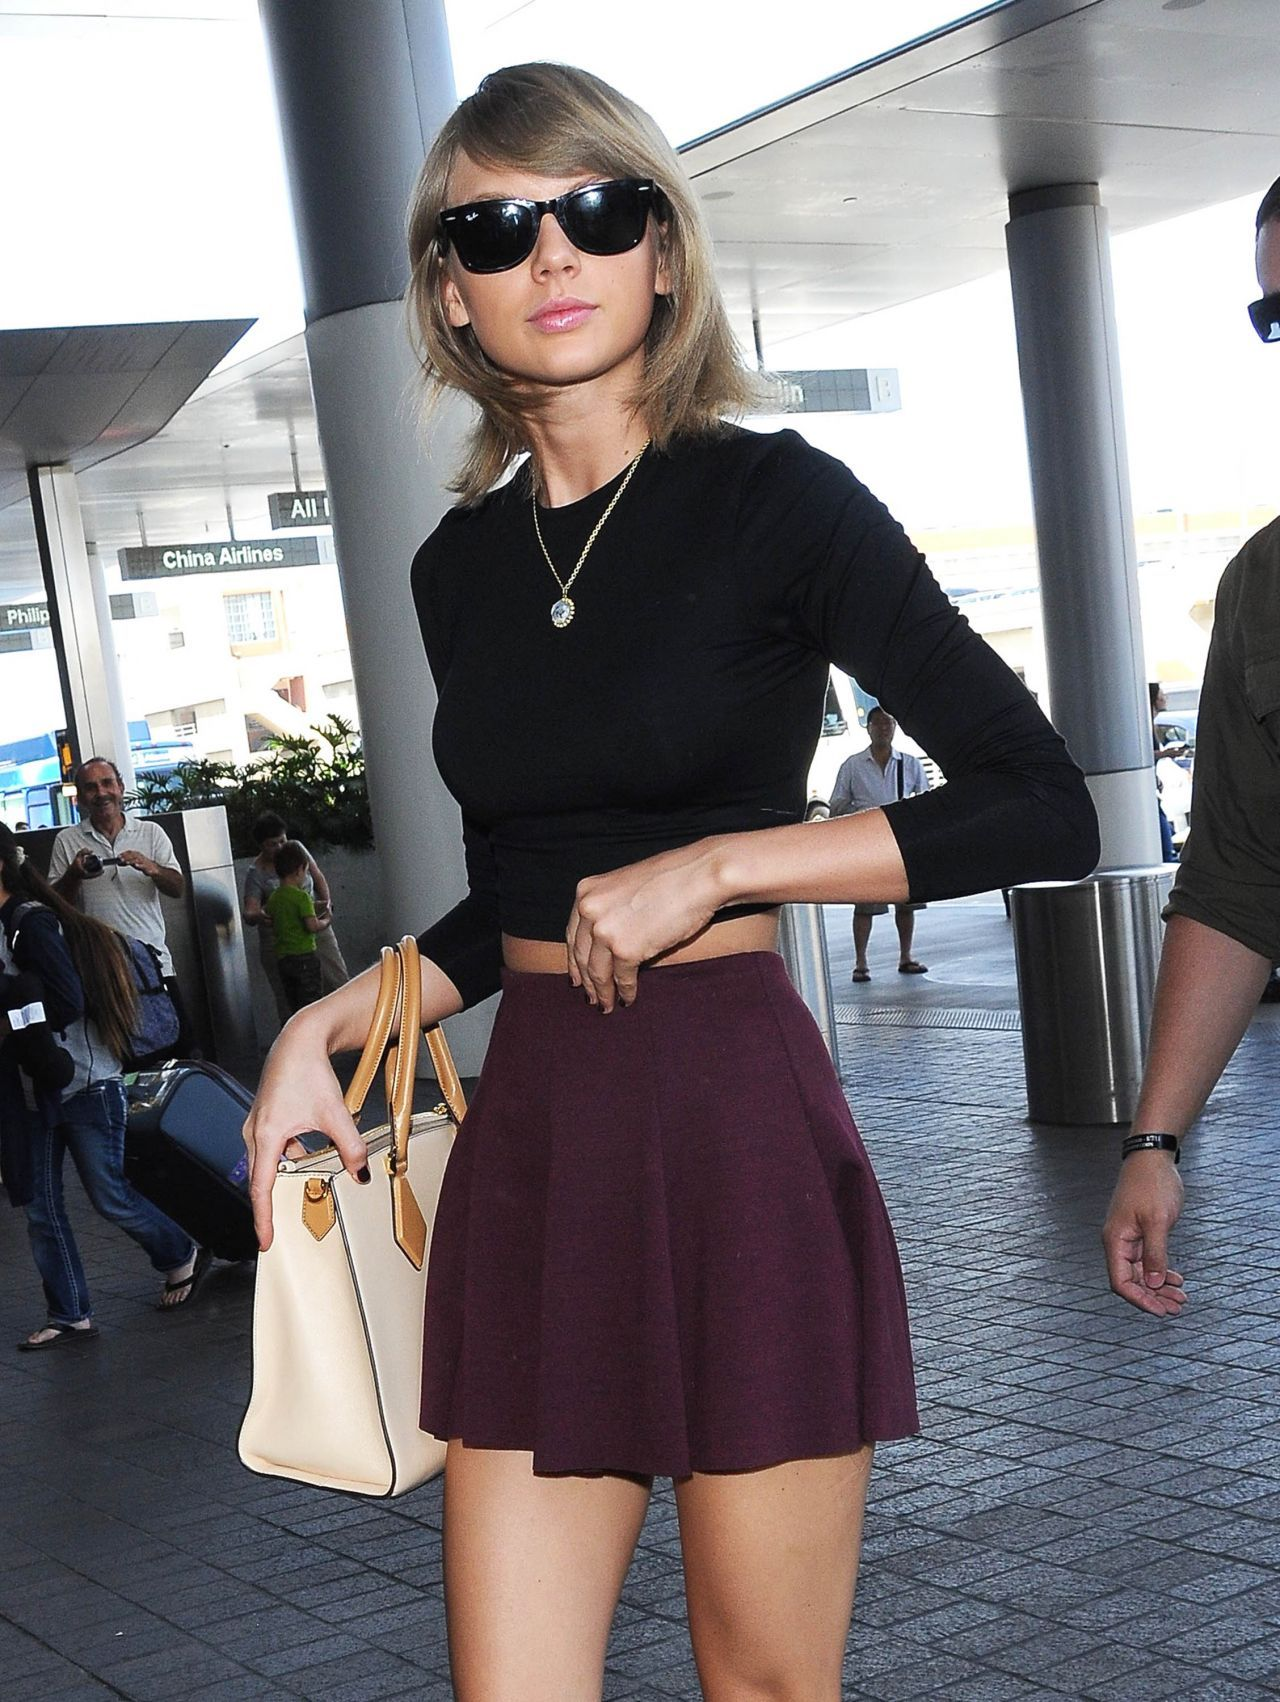 Taylor Swift Love This Style Fashion Celebs Pinterest Taylor Swift Style Taylor Swift And